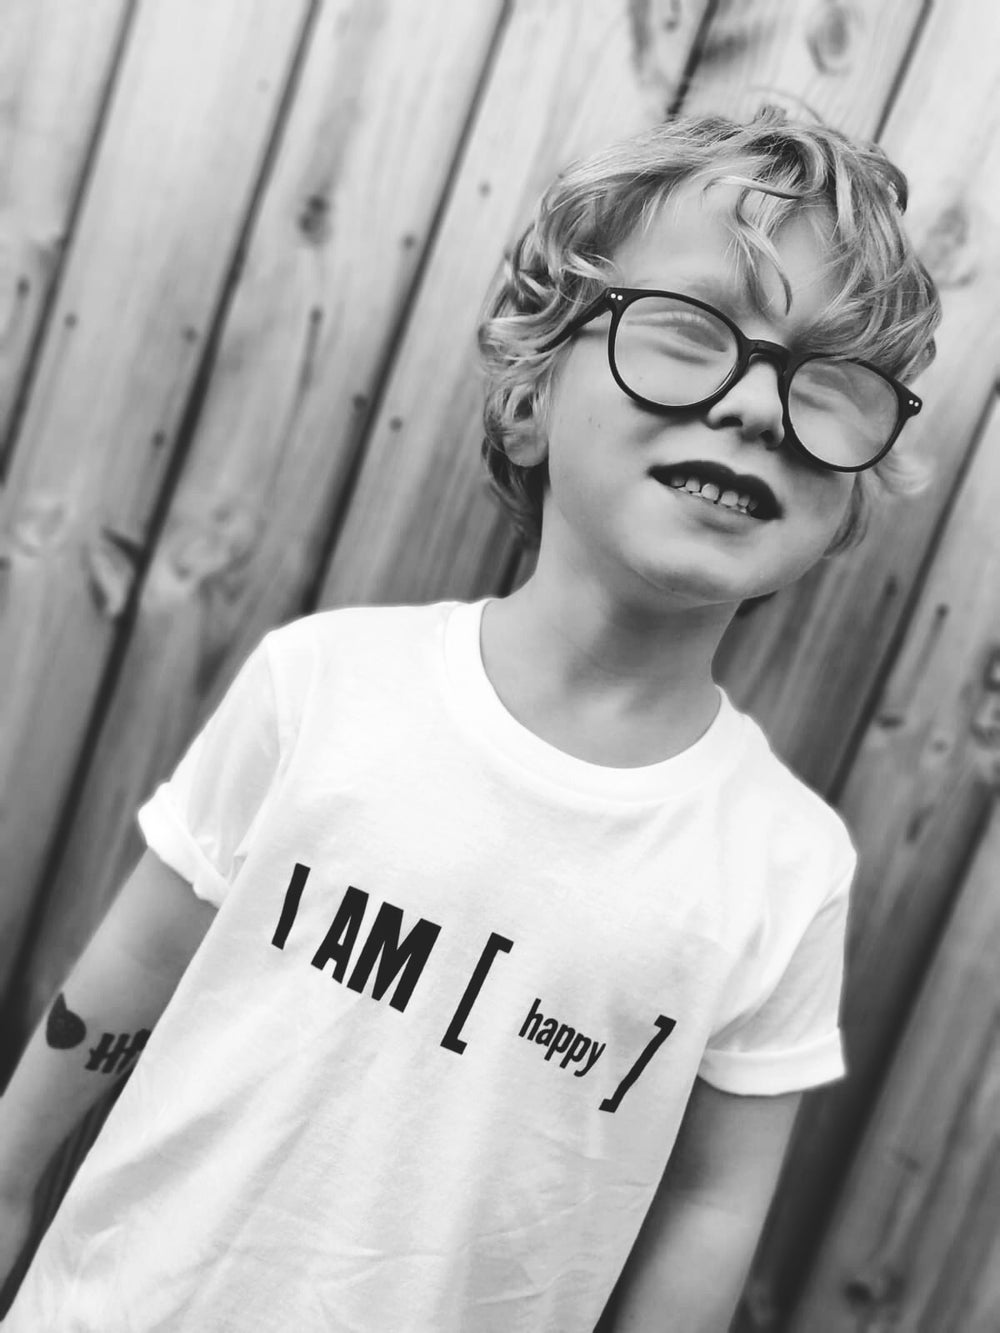 Casey Is - I AM [happy] T-Shirt